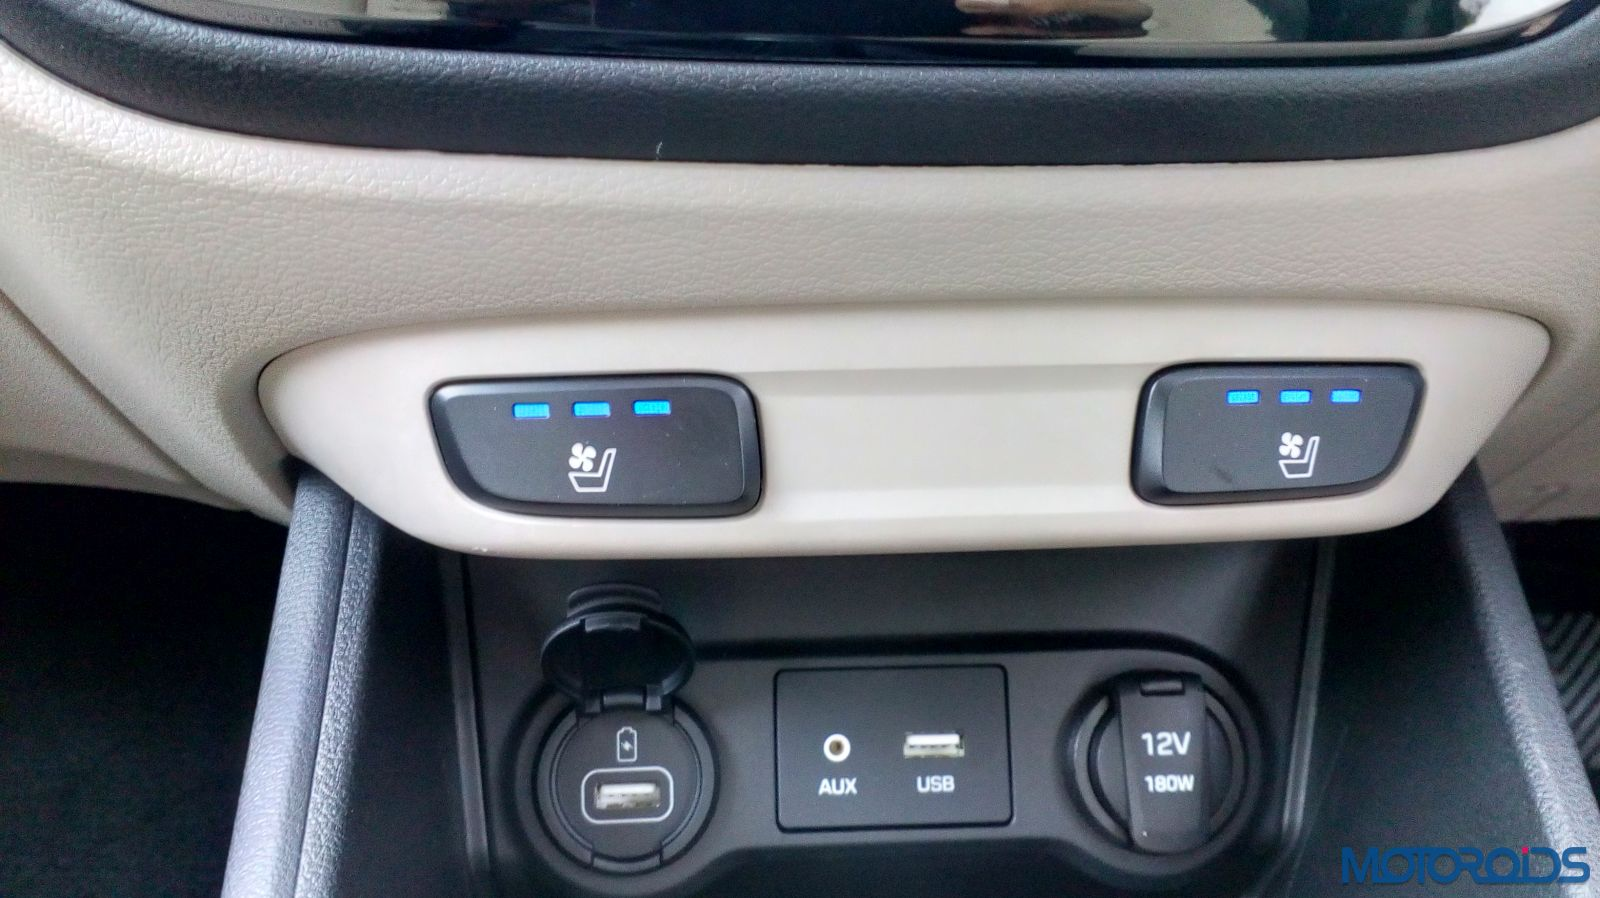 August 28, 2017-New-2017-Next-gen-Hyundai-Verna-seat-cooling-buttons-and-power-points24.jpg